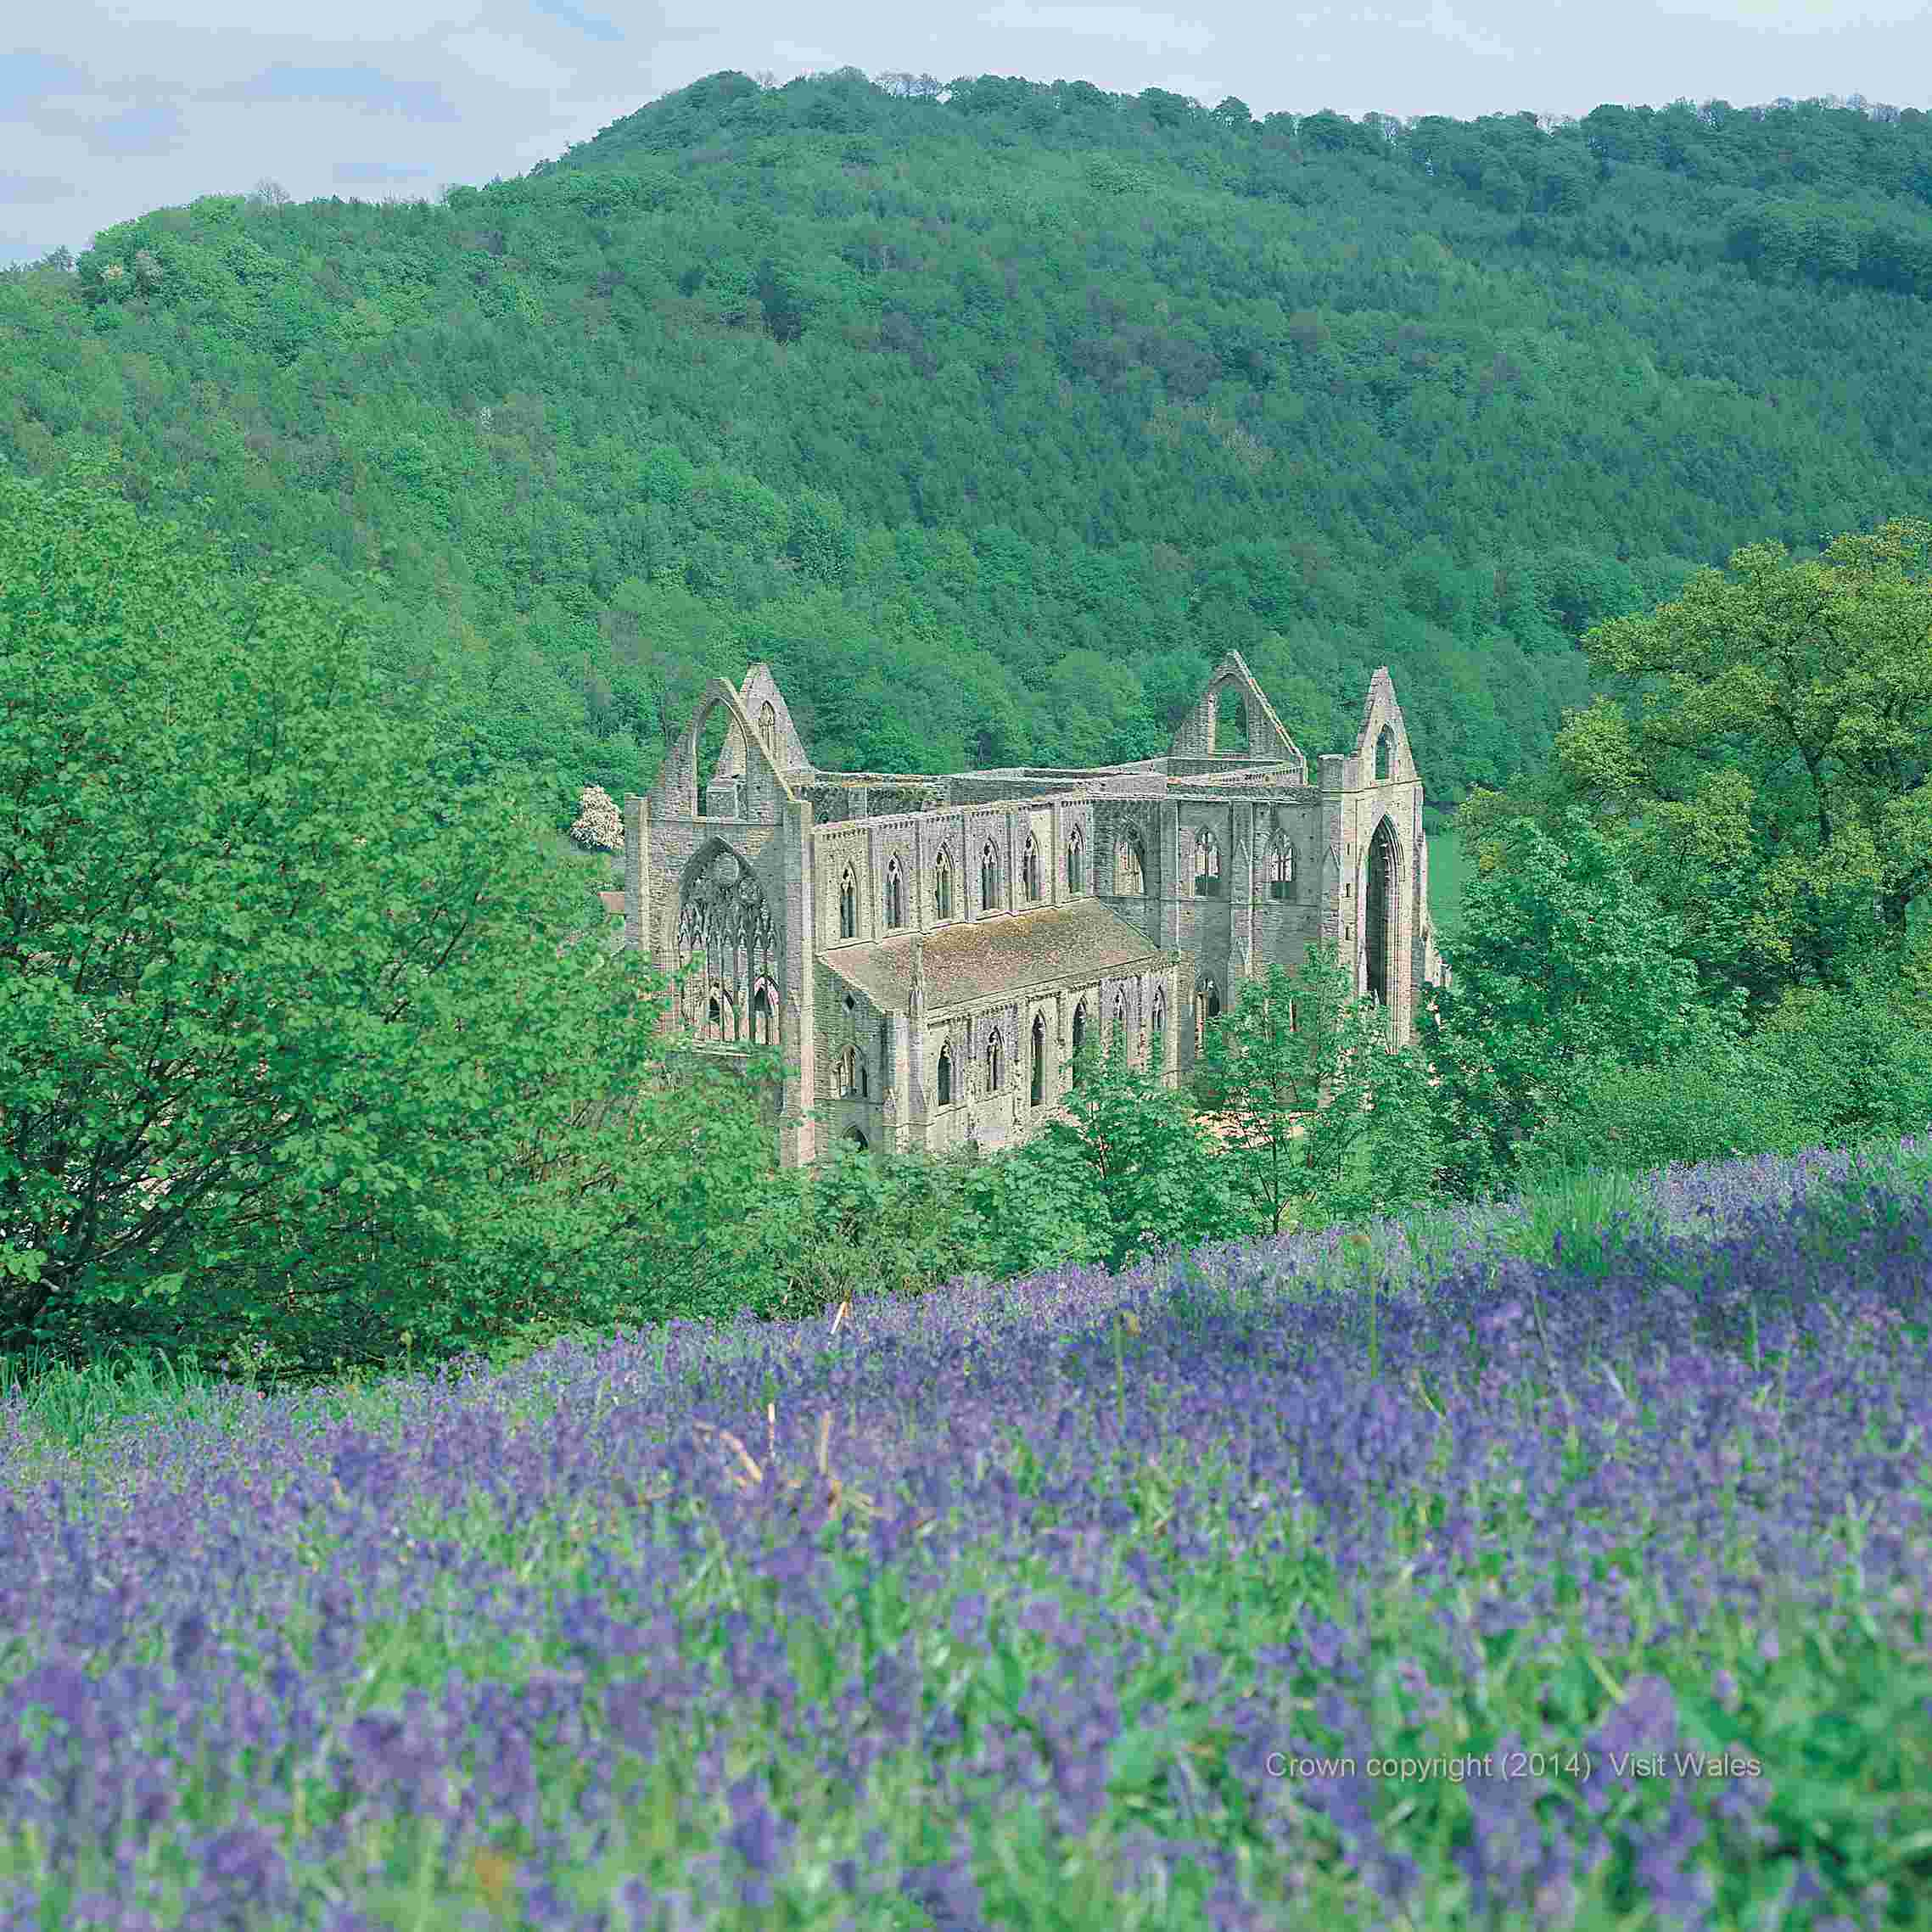 Visit the remains of  Tintern Abbey, one of the greatest monastic ruins of Wales.